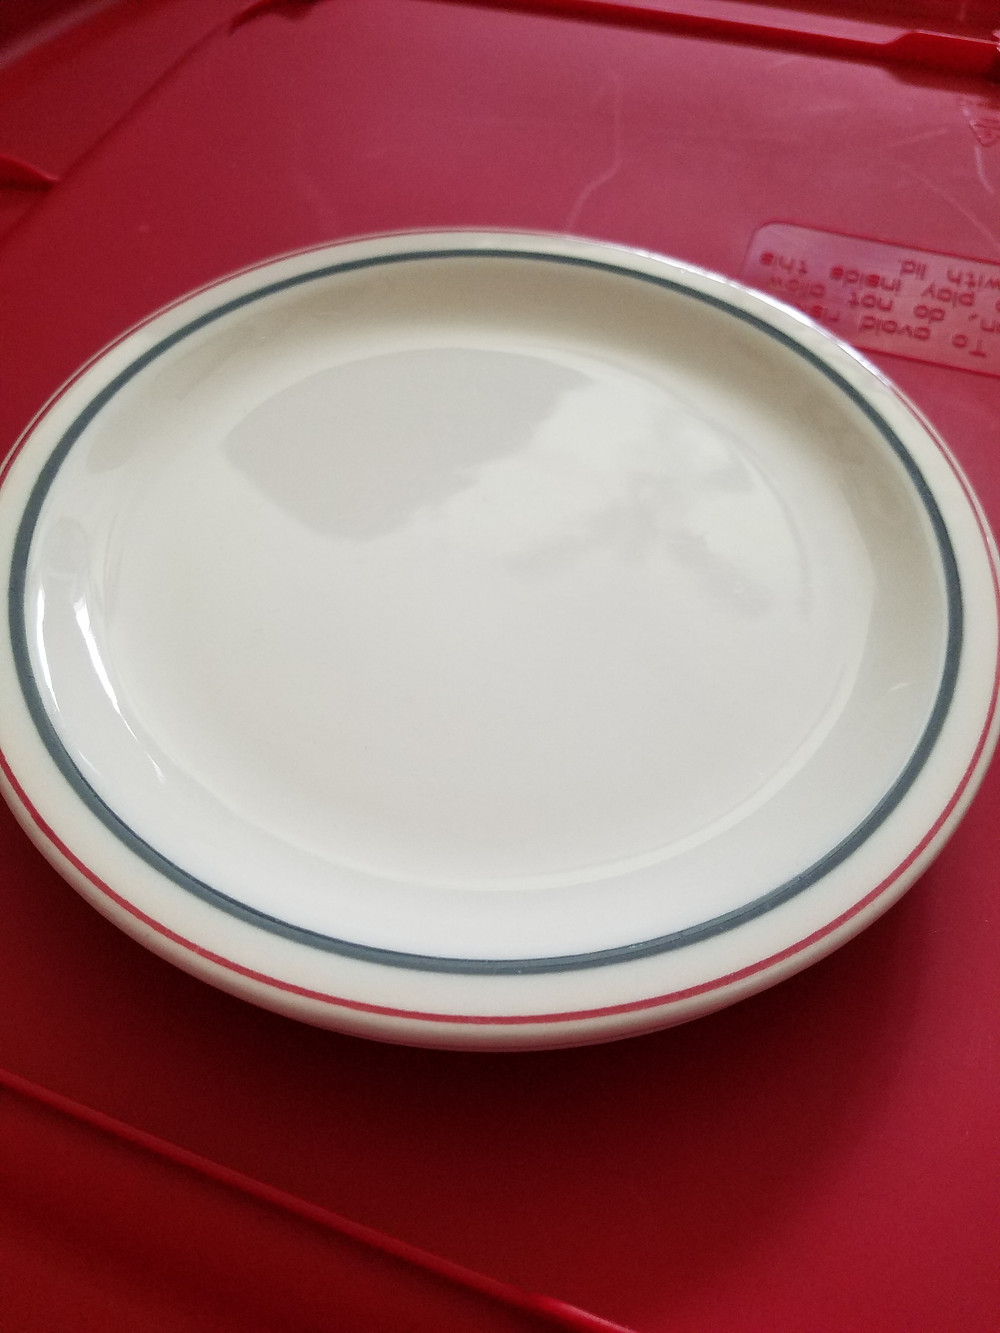 A small desert plate with thin red and blue stripes along the edge.